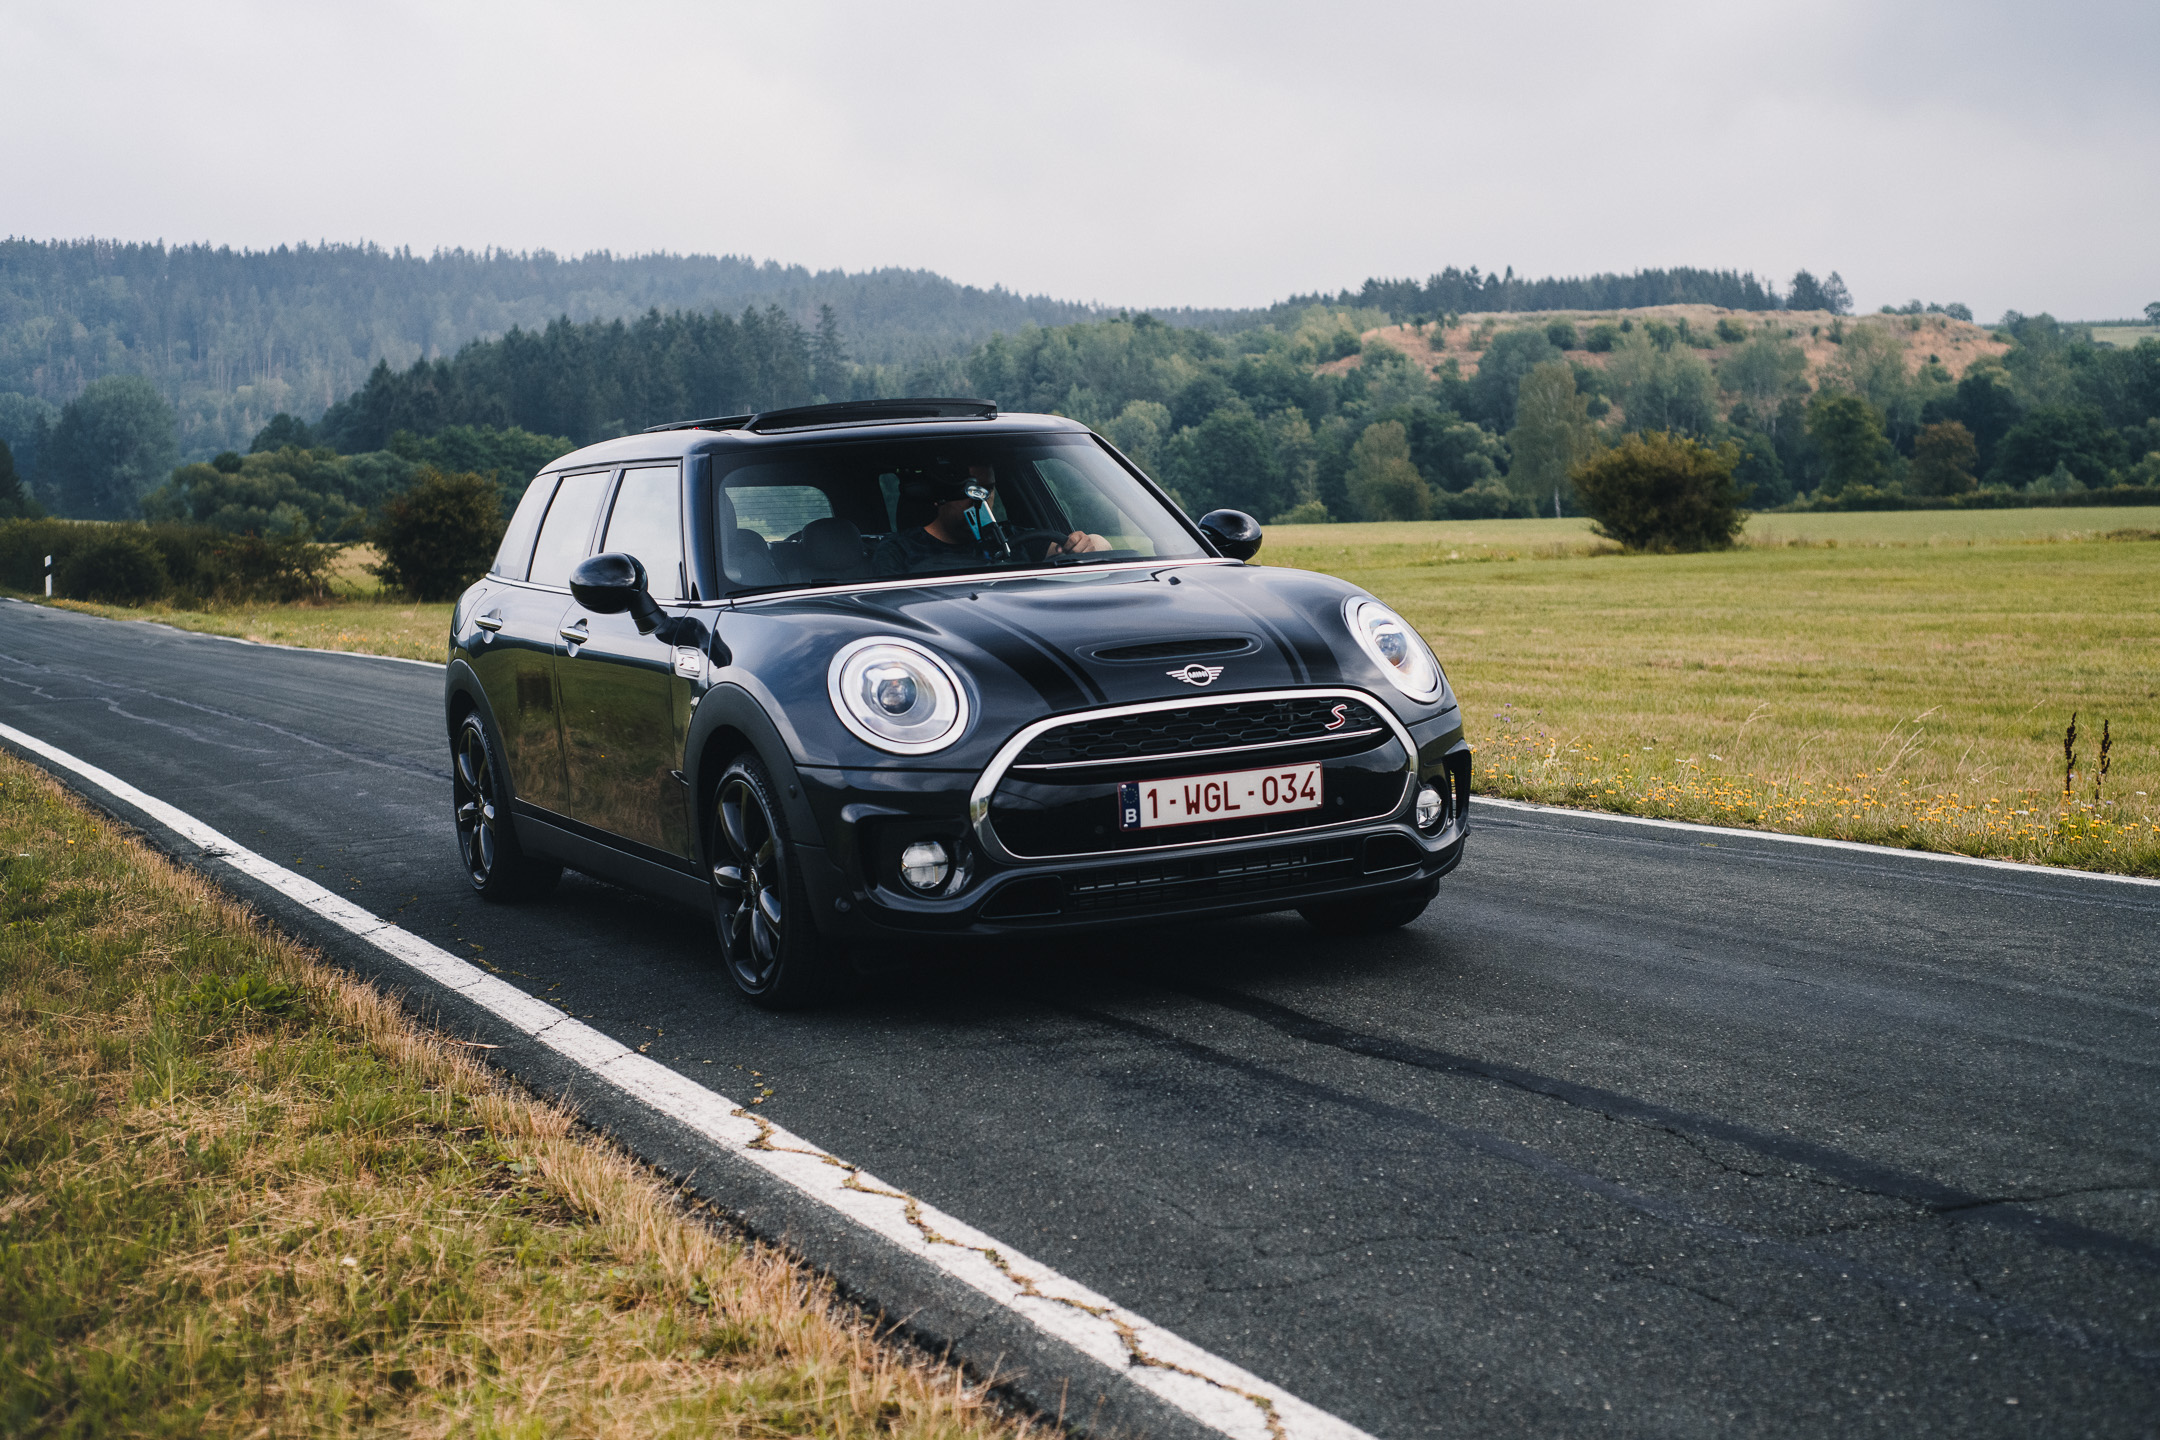 Road trip in Nordhrein Westfalen with a Mini Clubman S